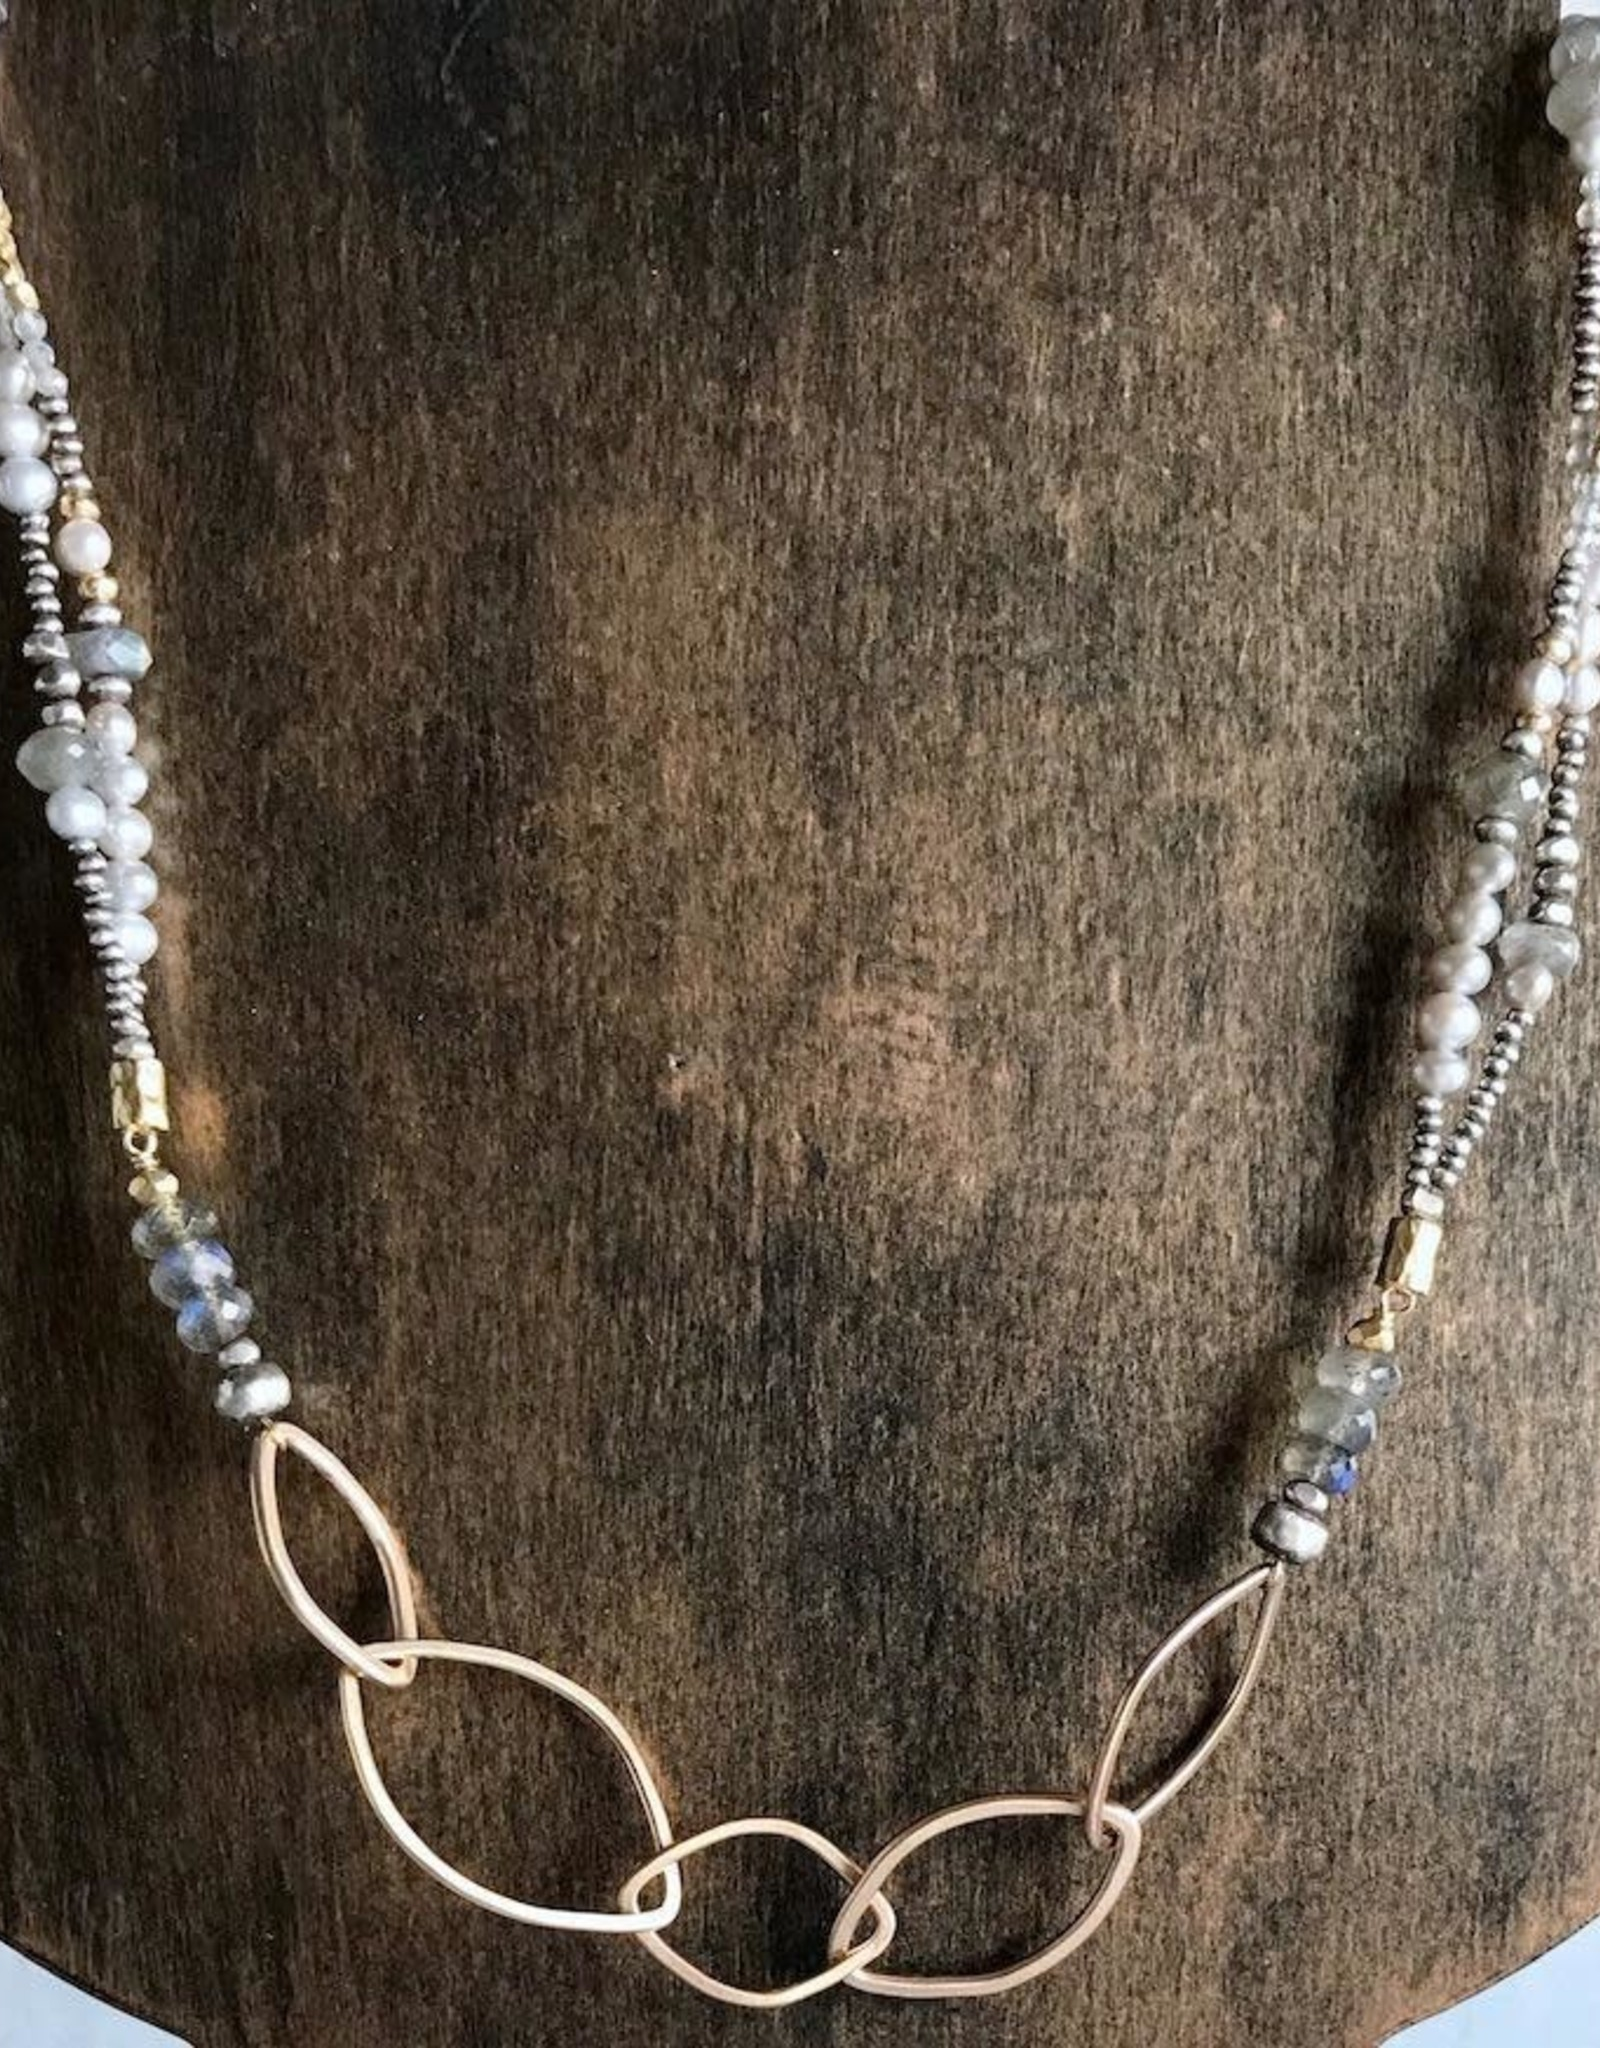 """J&I Handmade14kt Goldfill Leaf shape links on double strand 24"""" necklace strung with sterling, 6mm labradorite, grey pearl, and 14kt gold vermeil bead"""